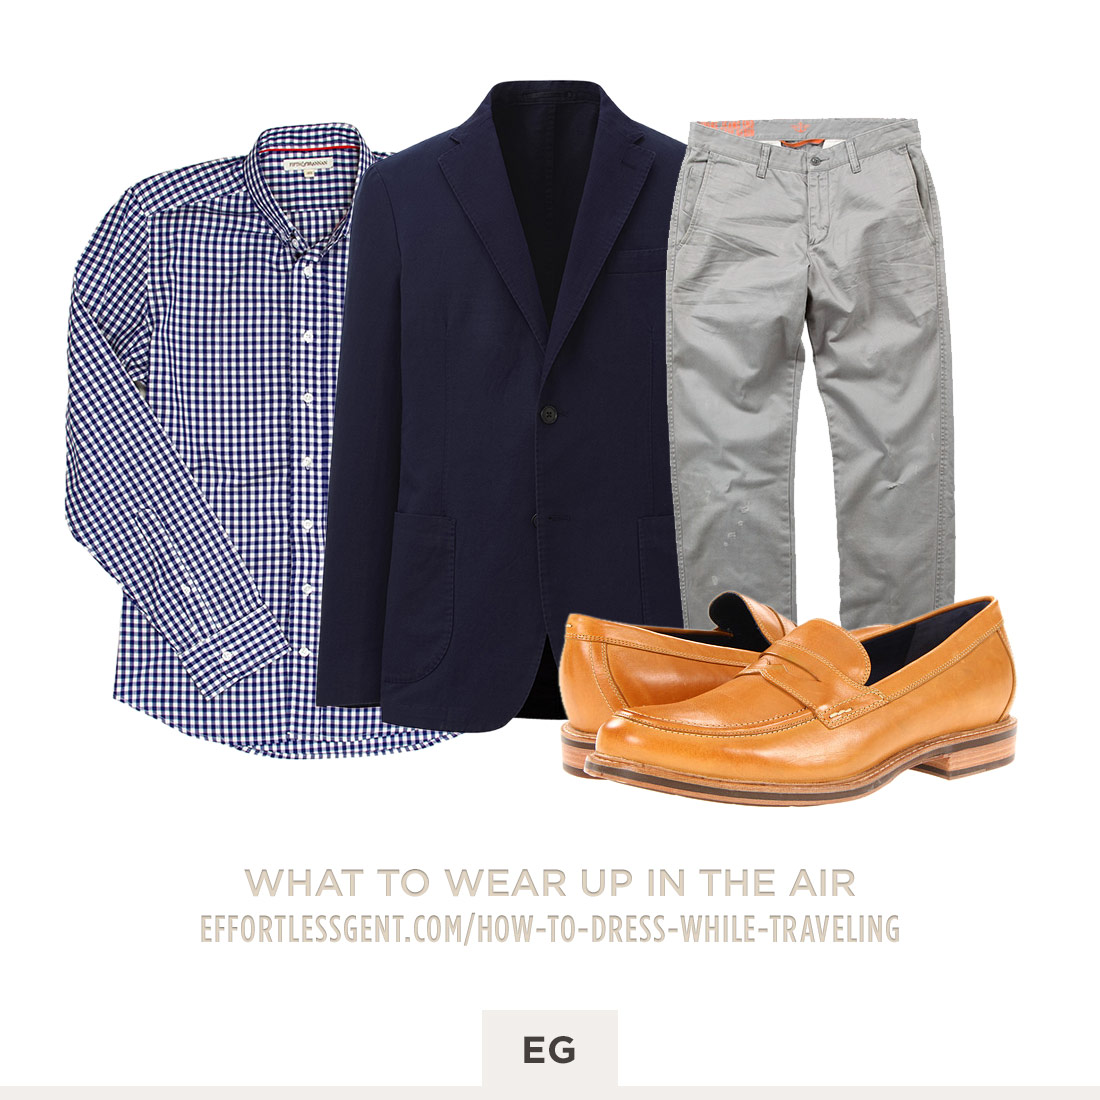 The Perfect Travel Outfit: How To Dress While Traveling, Effortless Gent